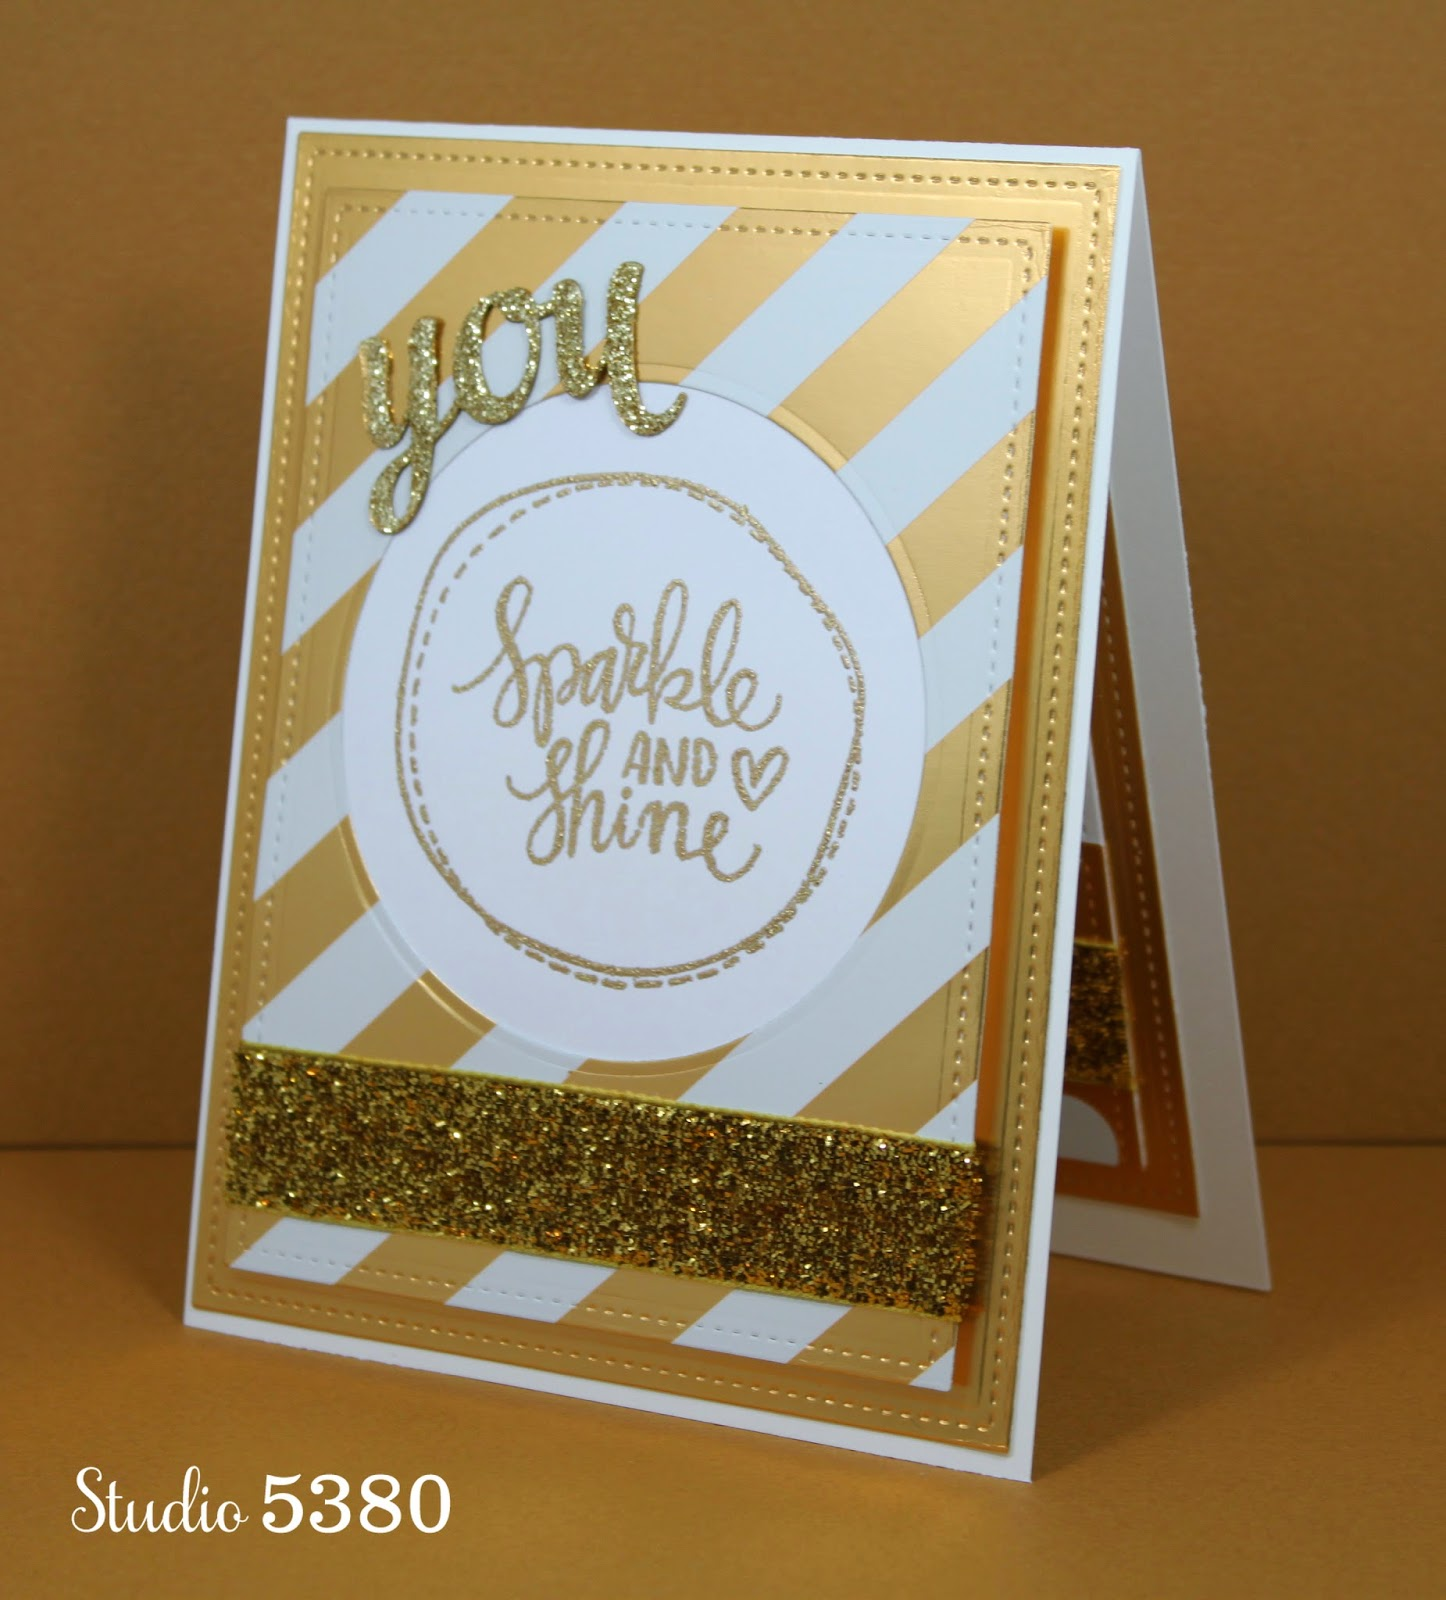 Studio 5380 Sparkle And Shine